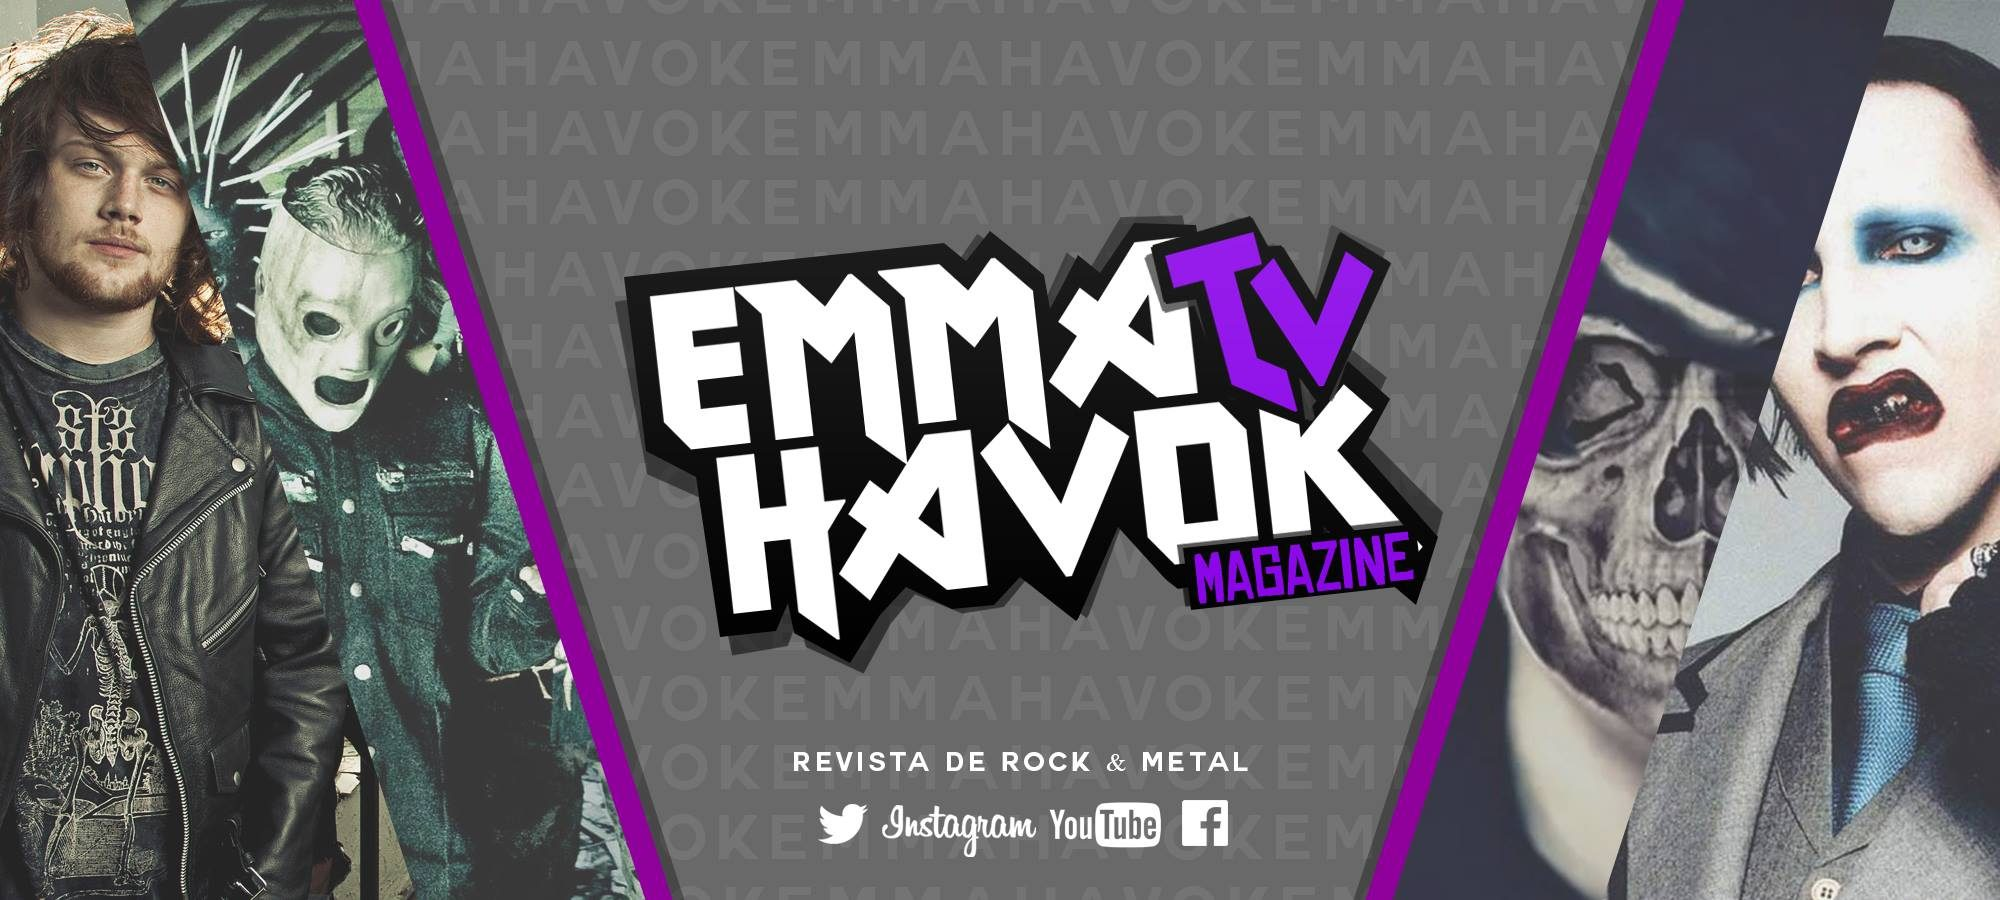 Emmahavok Magazine